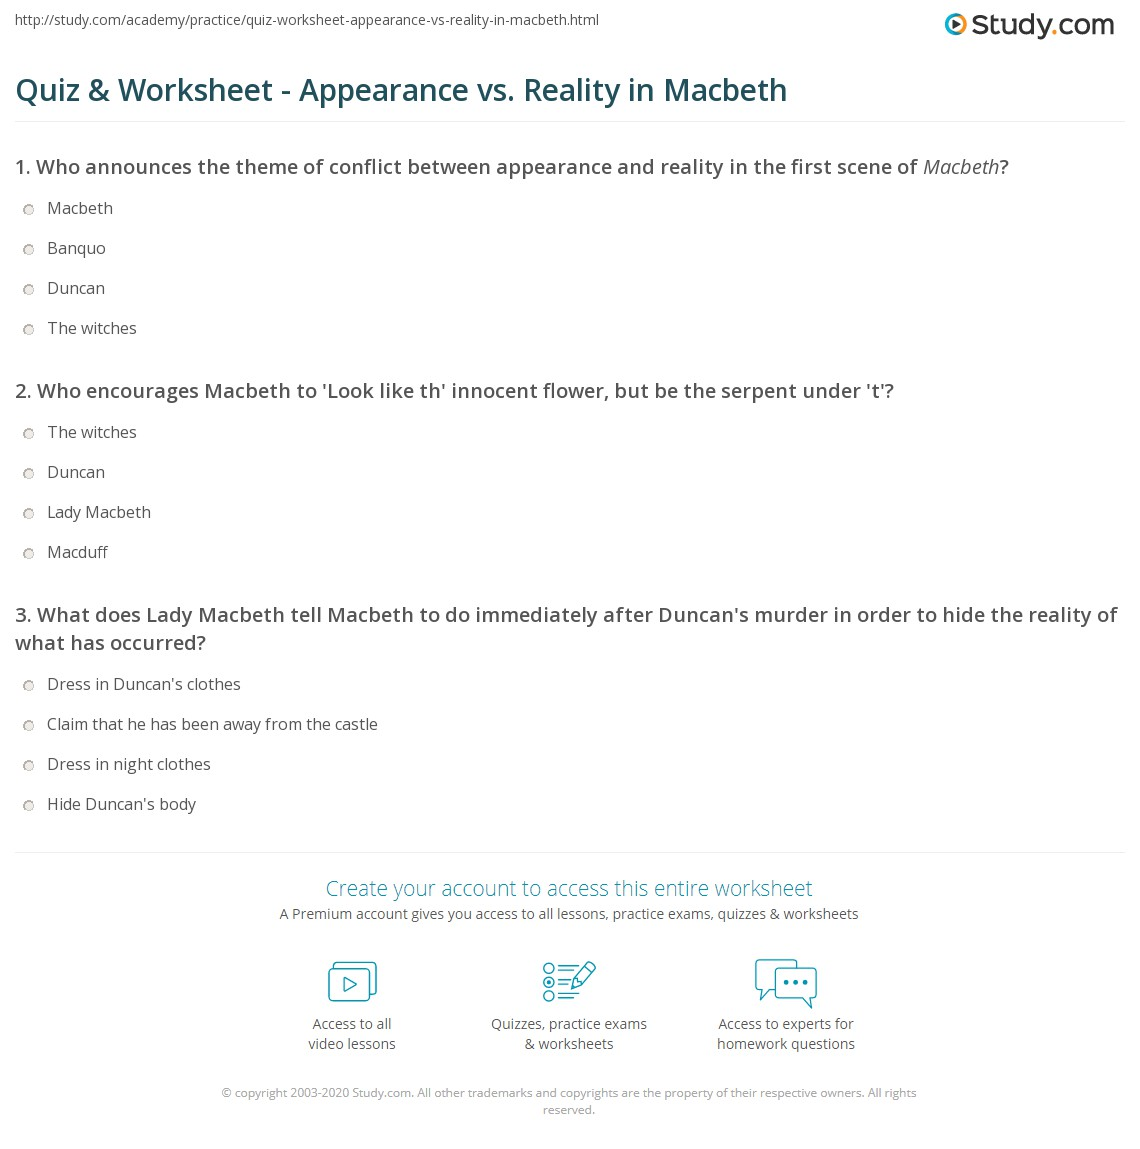 lady macbeth appearance vs reality essay 91 121 113 106 lady macbeth appearance vs reality essay